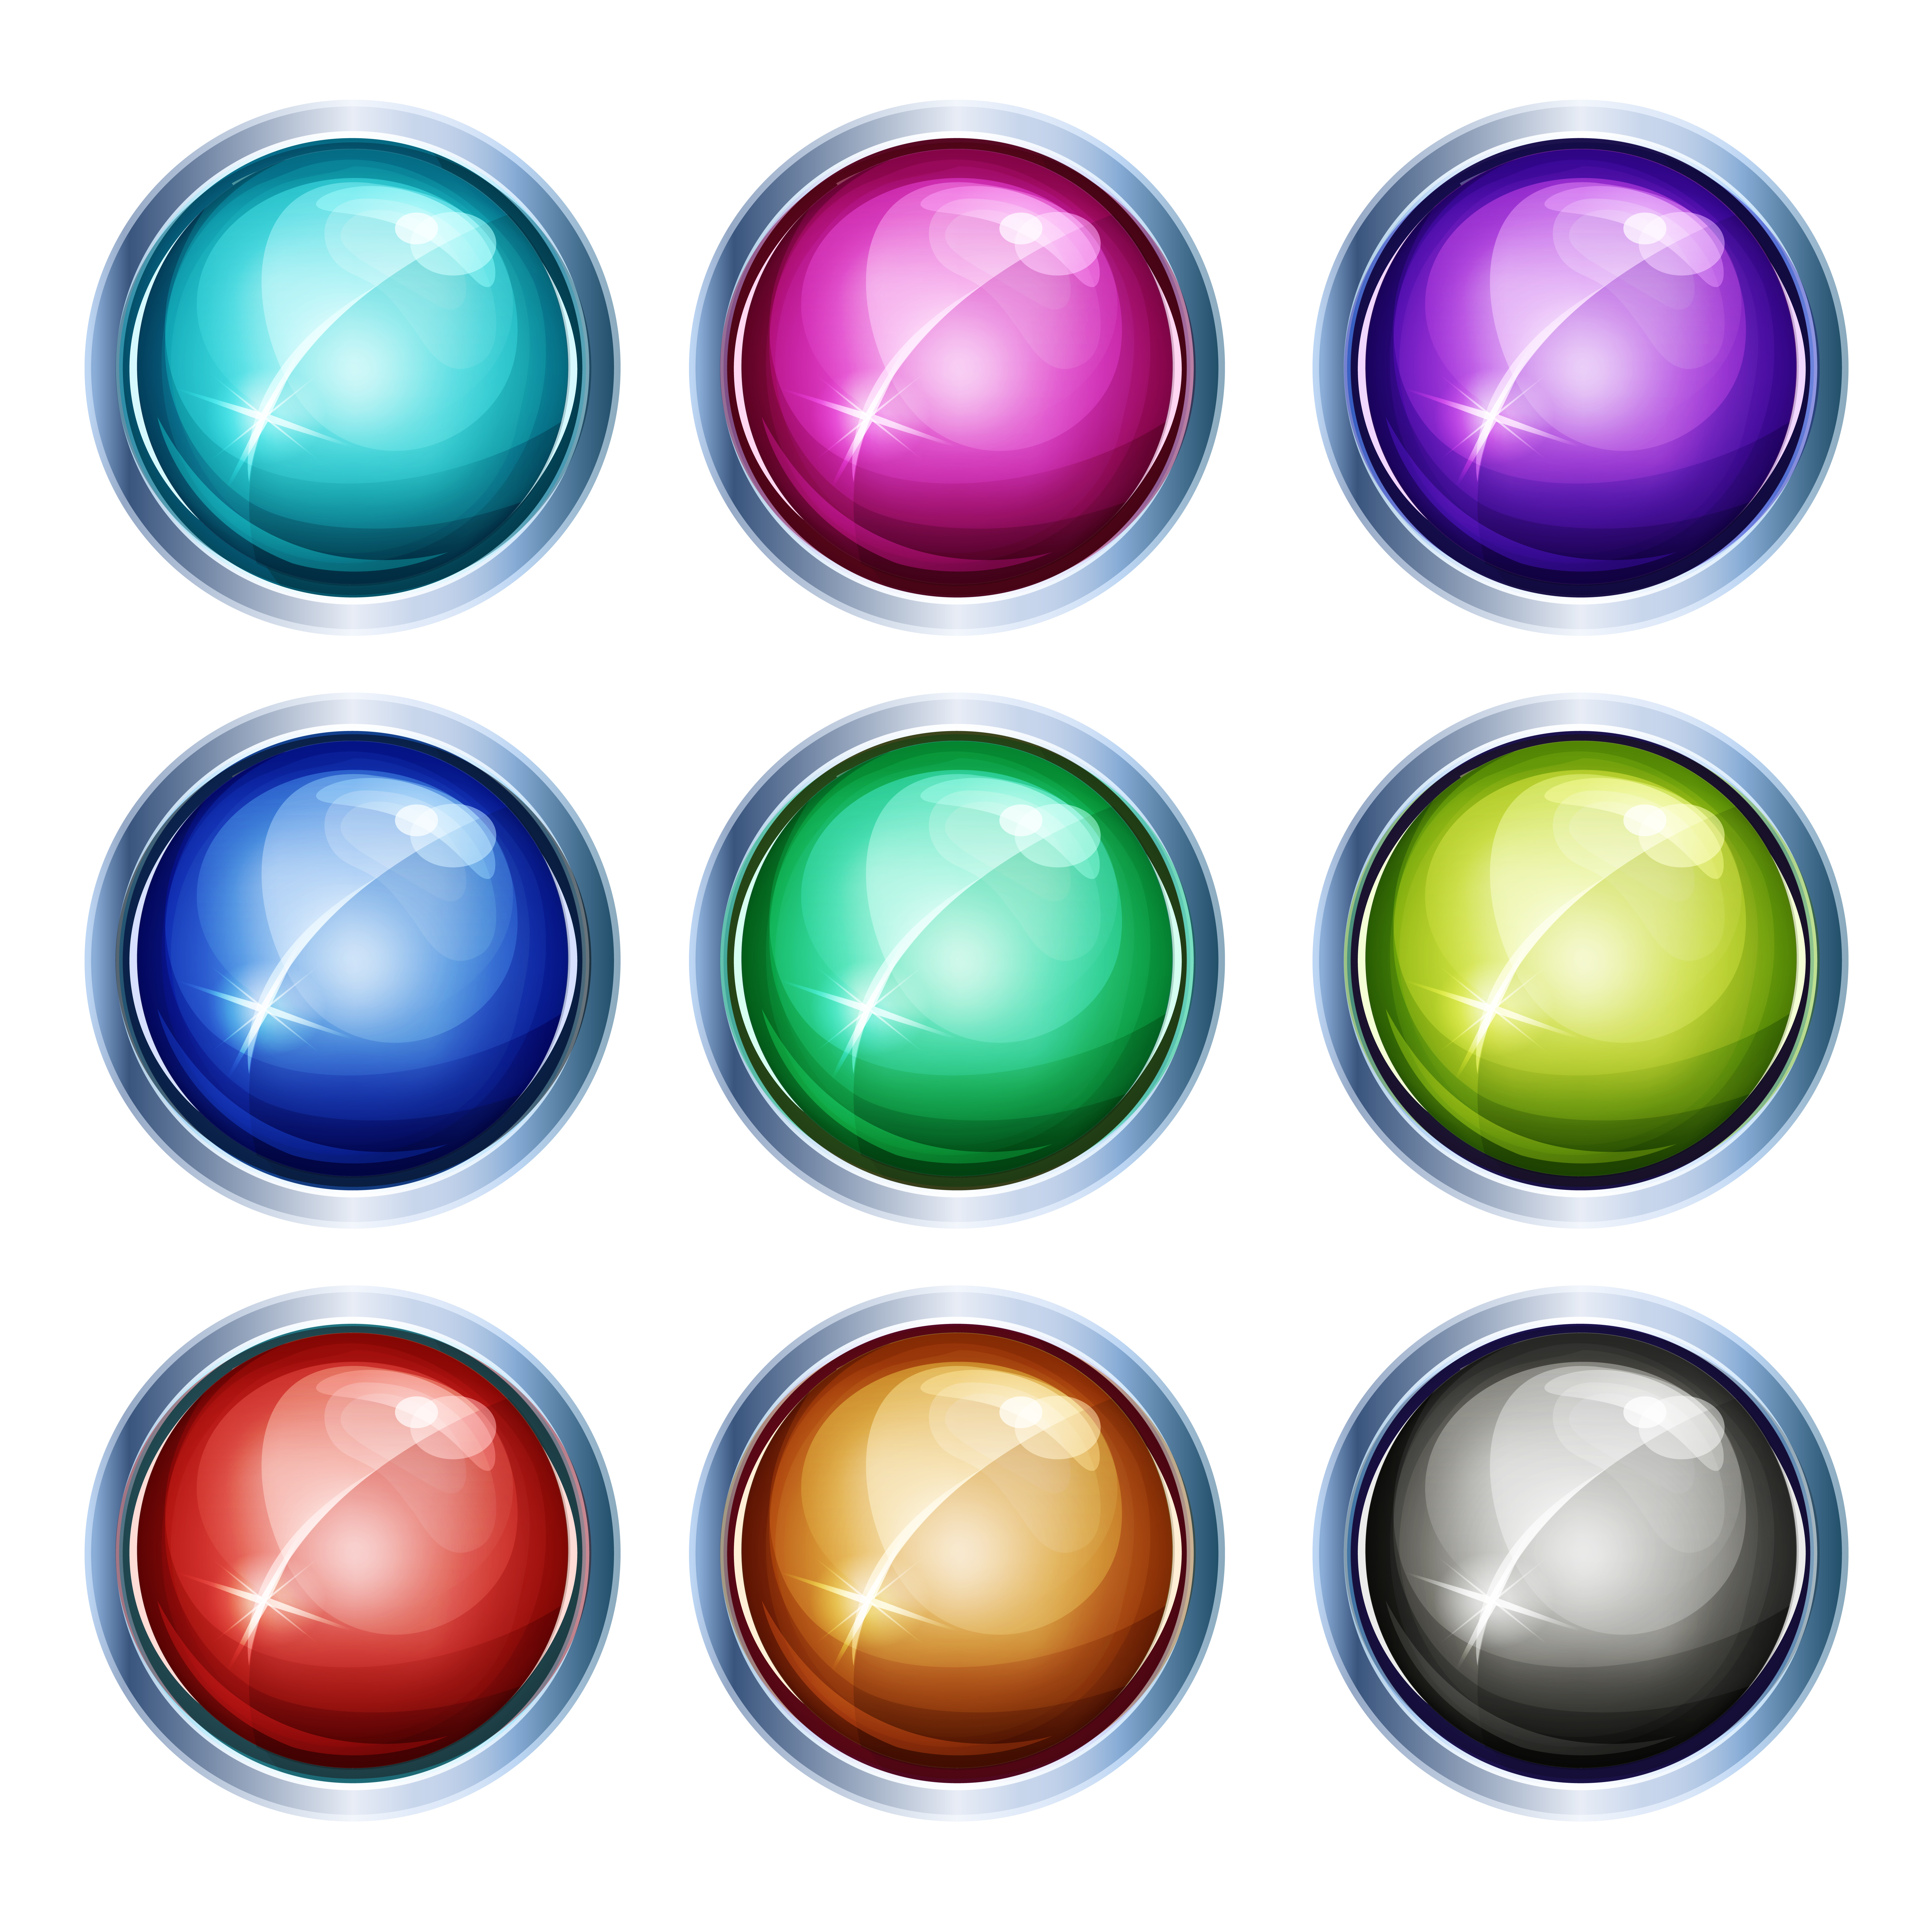 Rounded Light Icons And Buttons Download Free Vectors